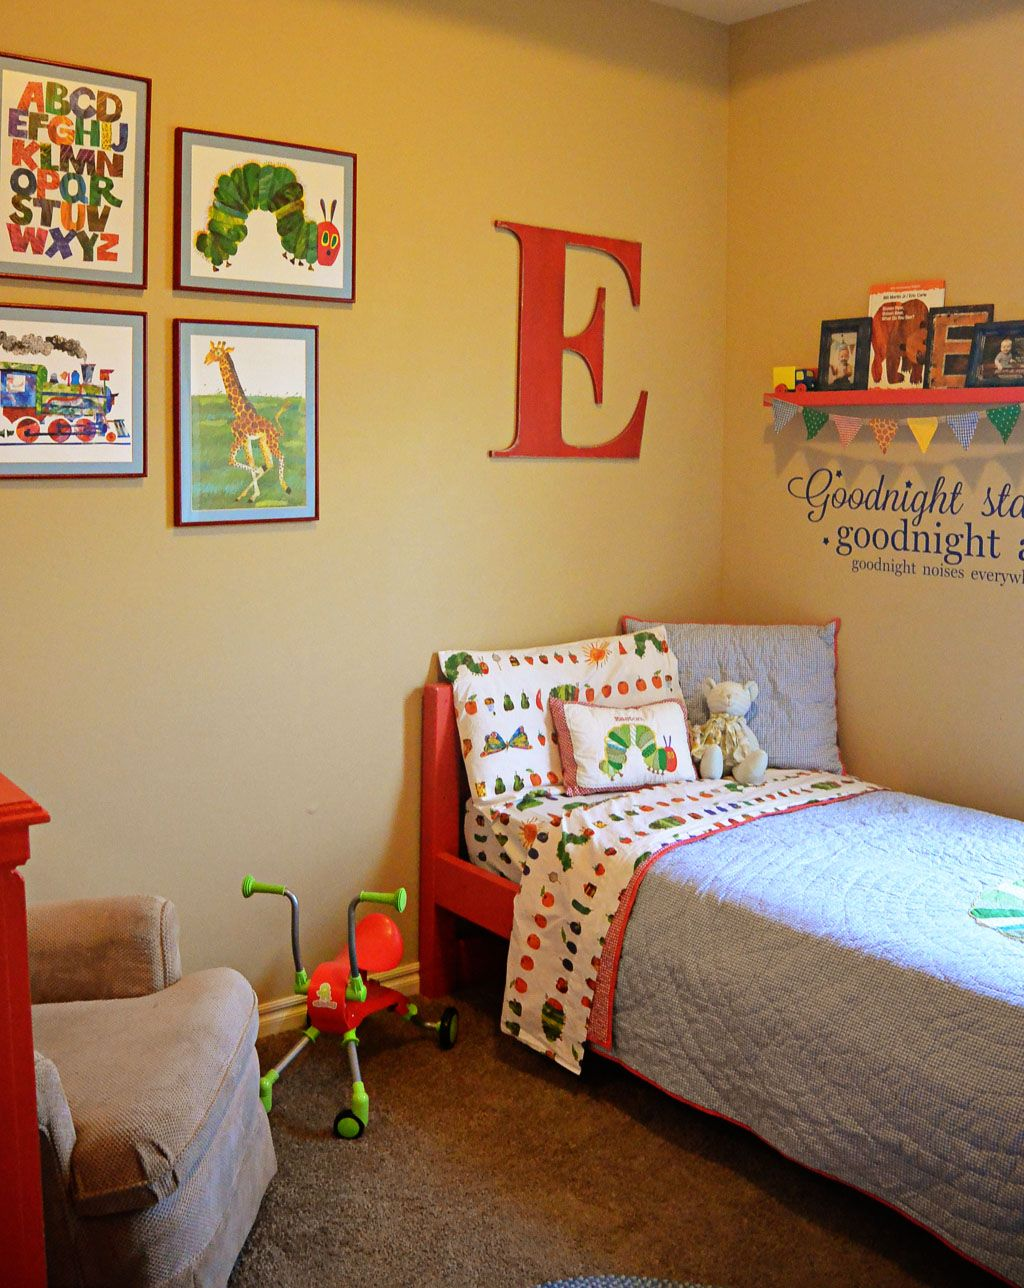 Little Boy Room Ideas: Little Boy's Bedroom. I Like The Big Letter Over The Bed